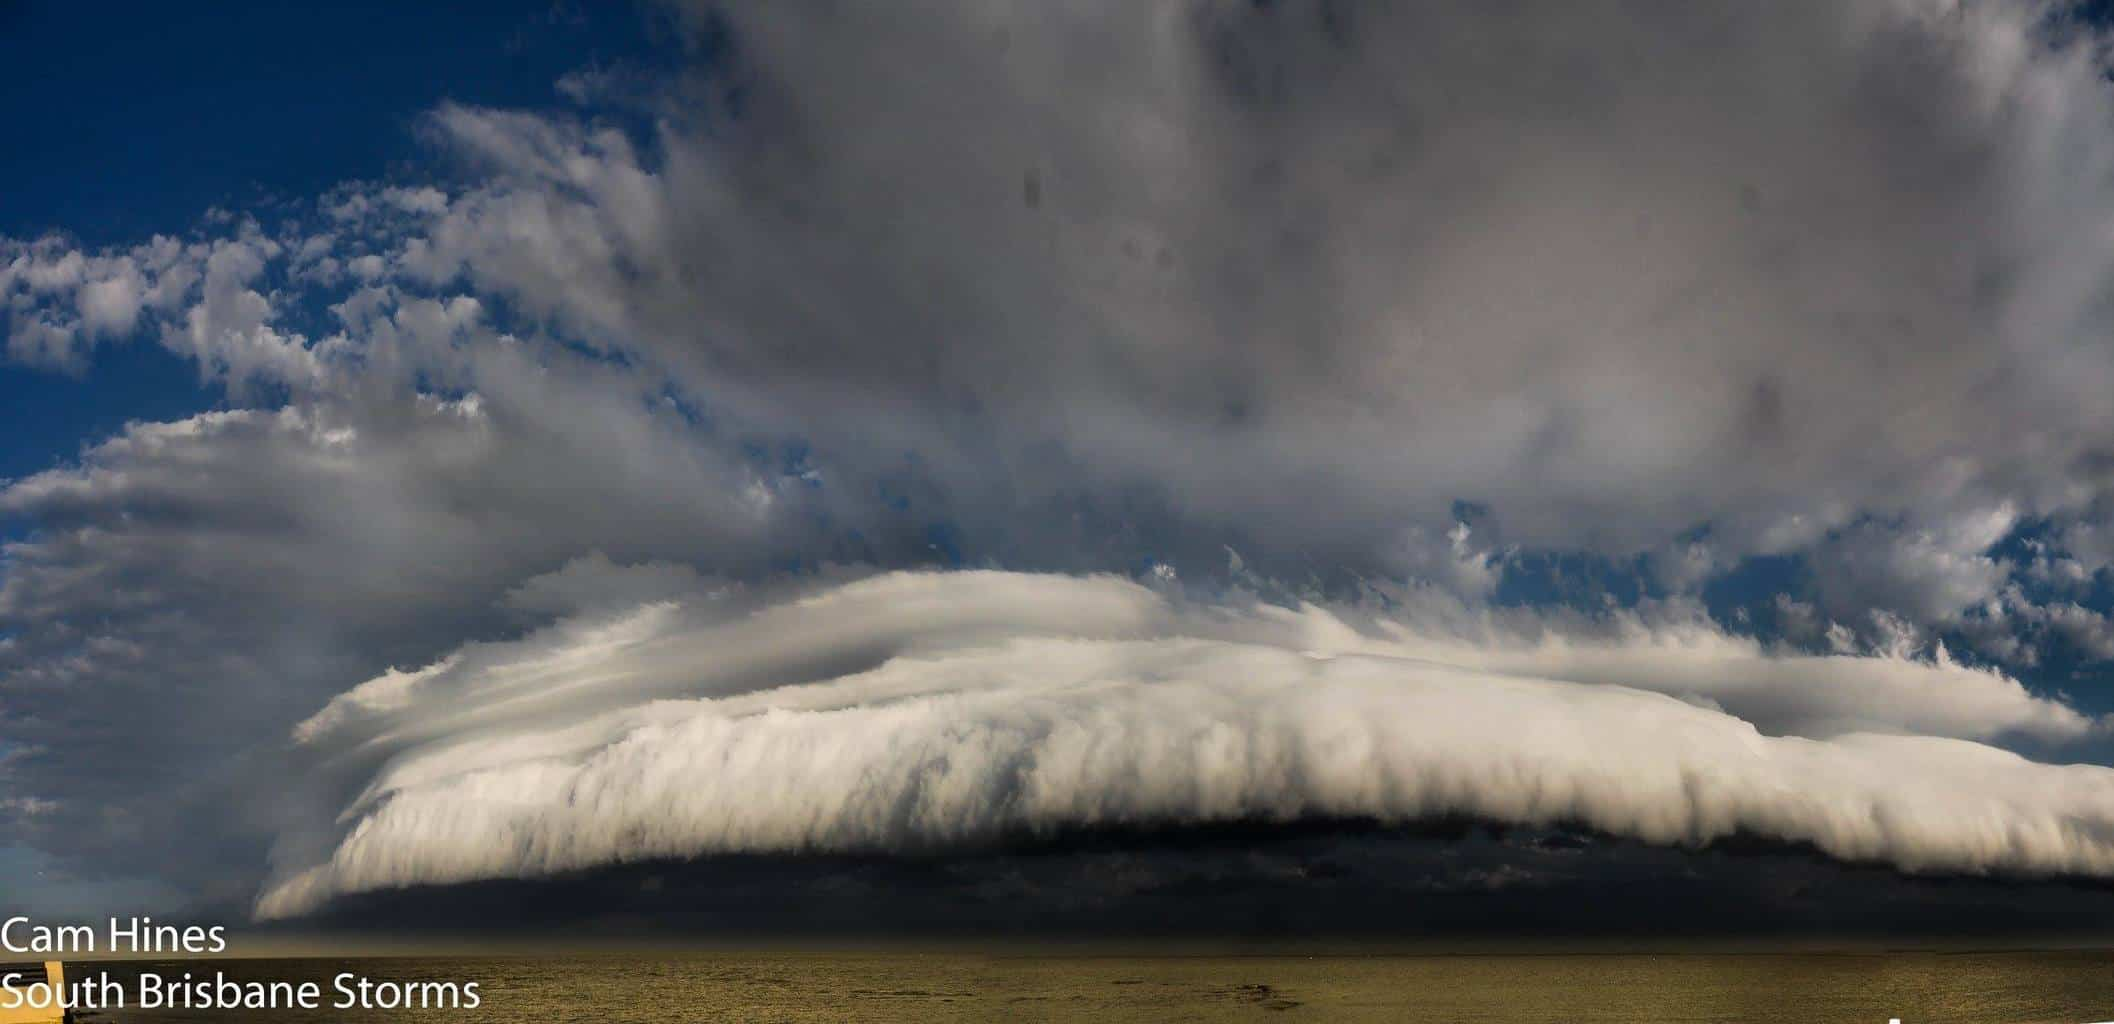 Bit of an oldie.. 3 years ago on March 7 2013 in Redcliffe, Australia. A roll cloud / gust front surging up the coastline marking the boundary of an incoming squally southerly wind change.